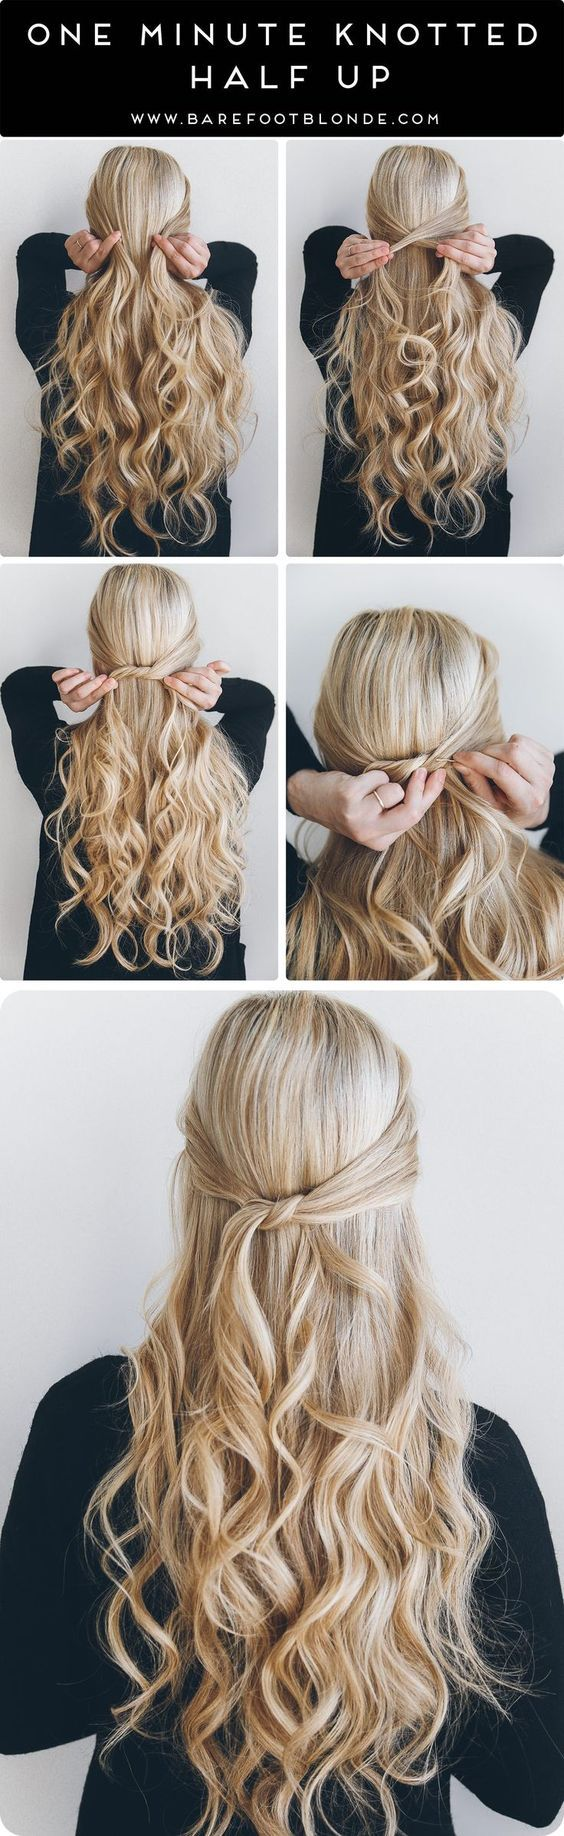 easy half up half down hairstyles step by step easy